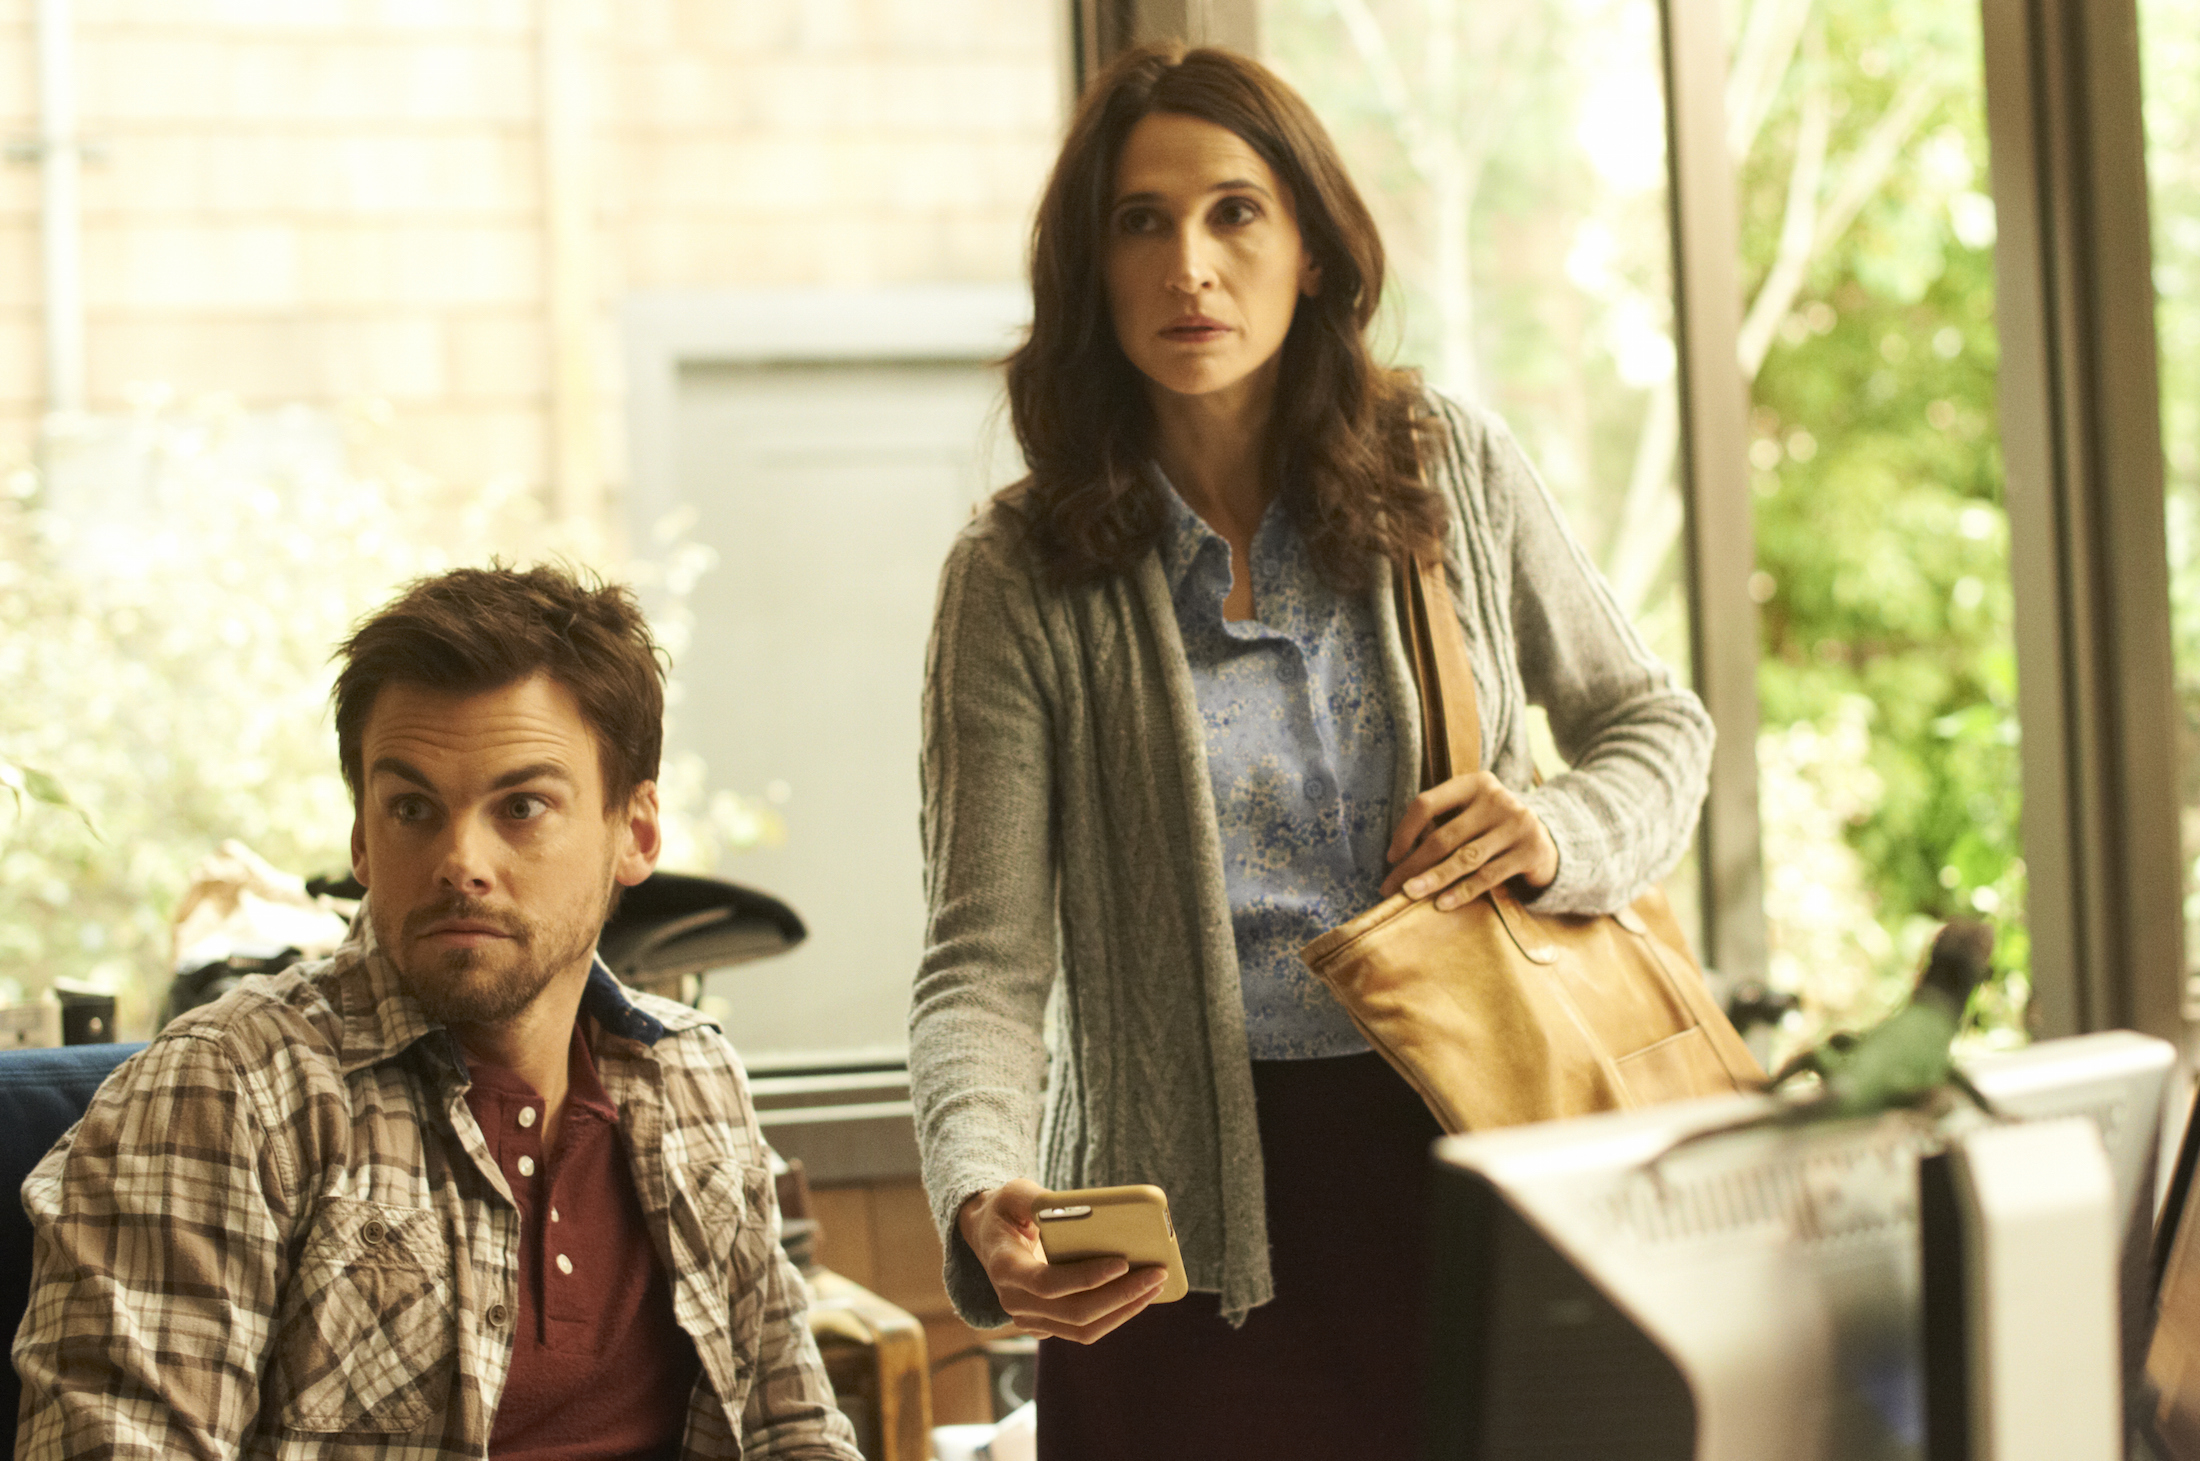 "CASUAL -- ""Mom"" Episode 105 -- Valerie and Alex's mother shows up unannounced. Valerie receives sound advice from an unlikely source. Laura and Michael share a moment. Alex (Tommy Dewey) and Valerie (Michaela Watkins), shown. (Photo by: Greg Lewis/Hulu)"